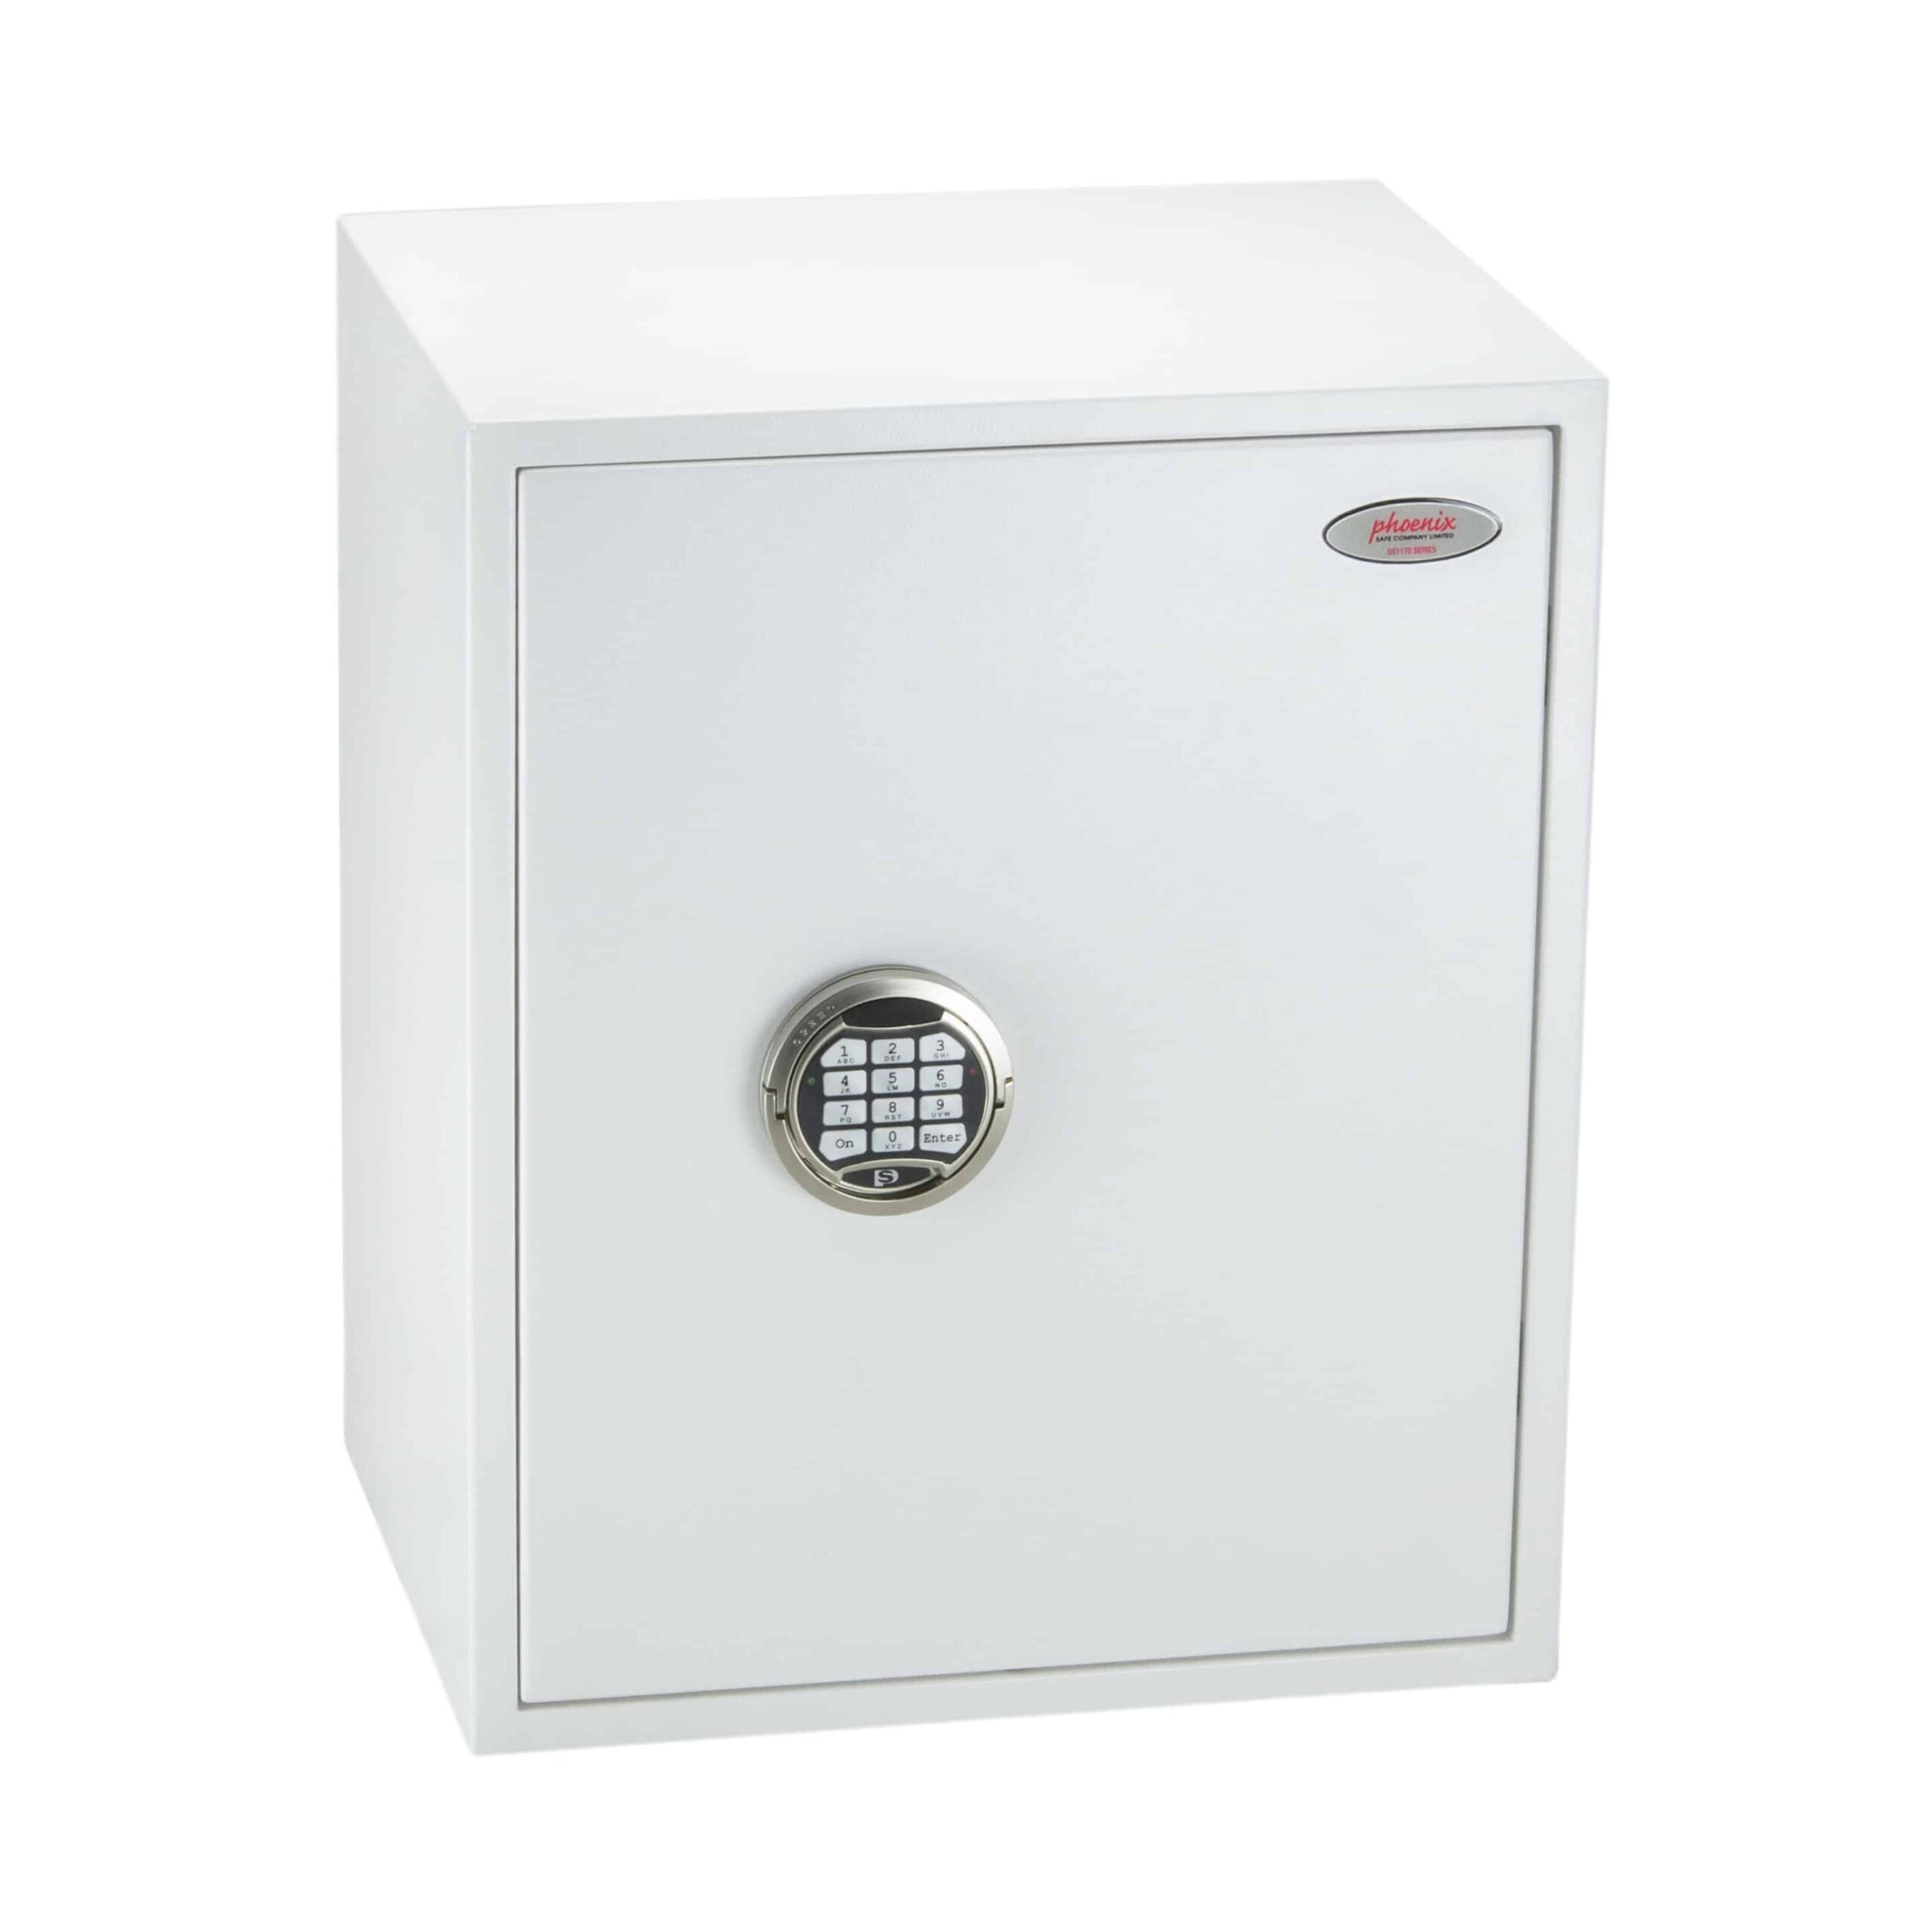 Phoenix Fortress SS1183 Size 3 Security Safe